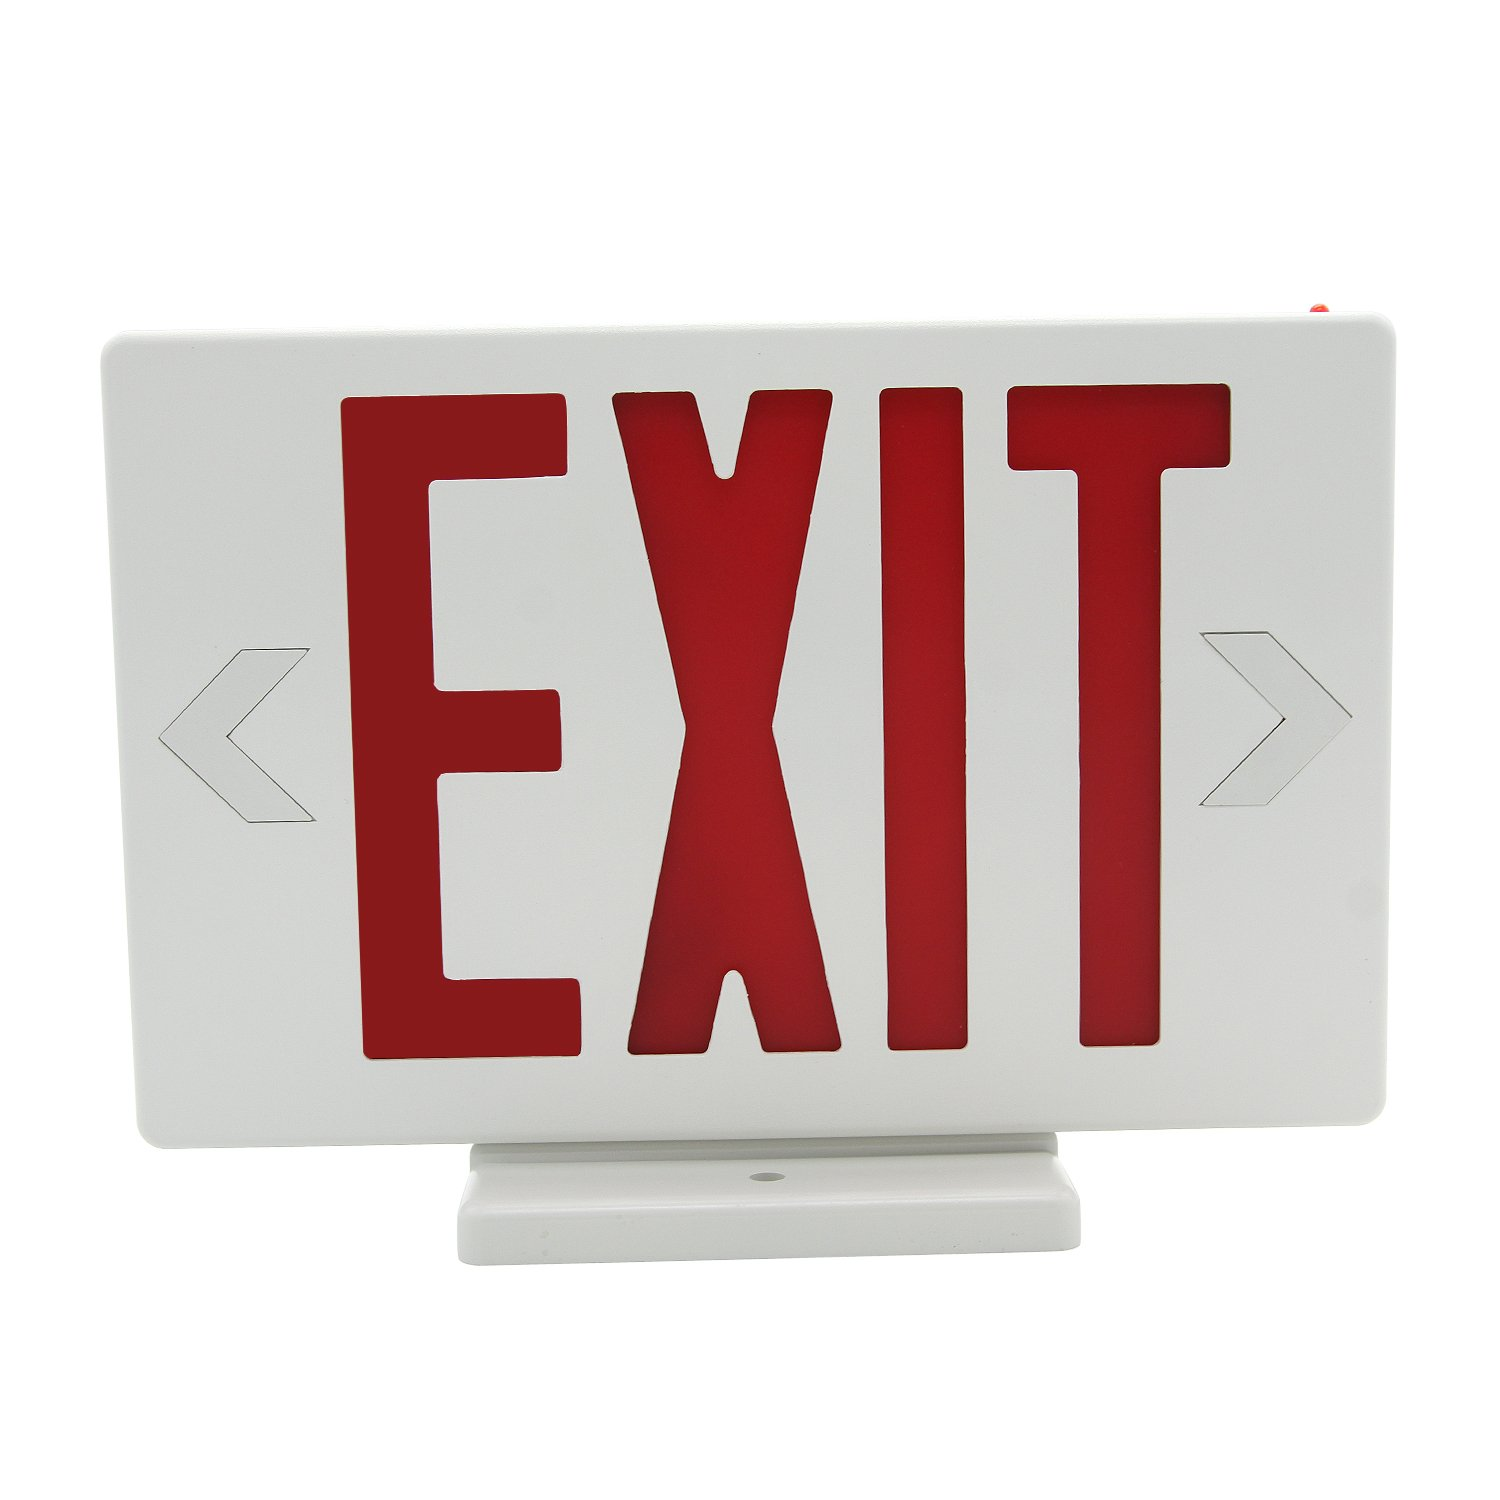 HYD-Parts LED Exit Sign Emergency Light,UL Certified - Hardwired Red LED Exit Sign, Modern Design - Battery Backup - Emergency Fire Safety